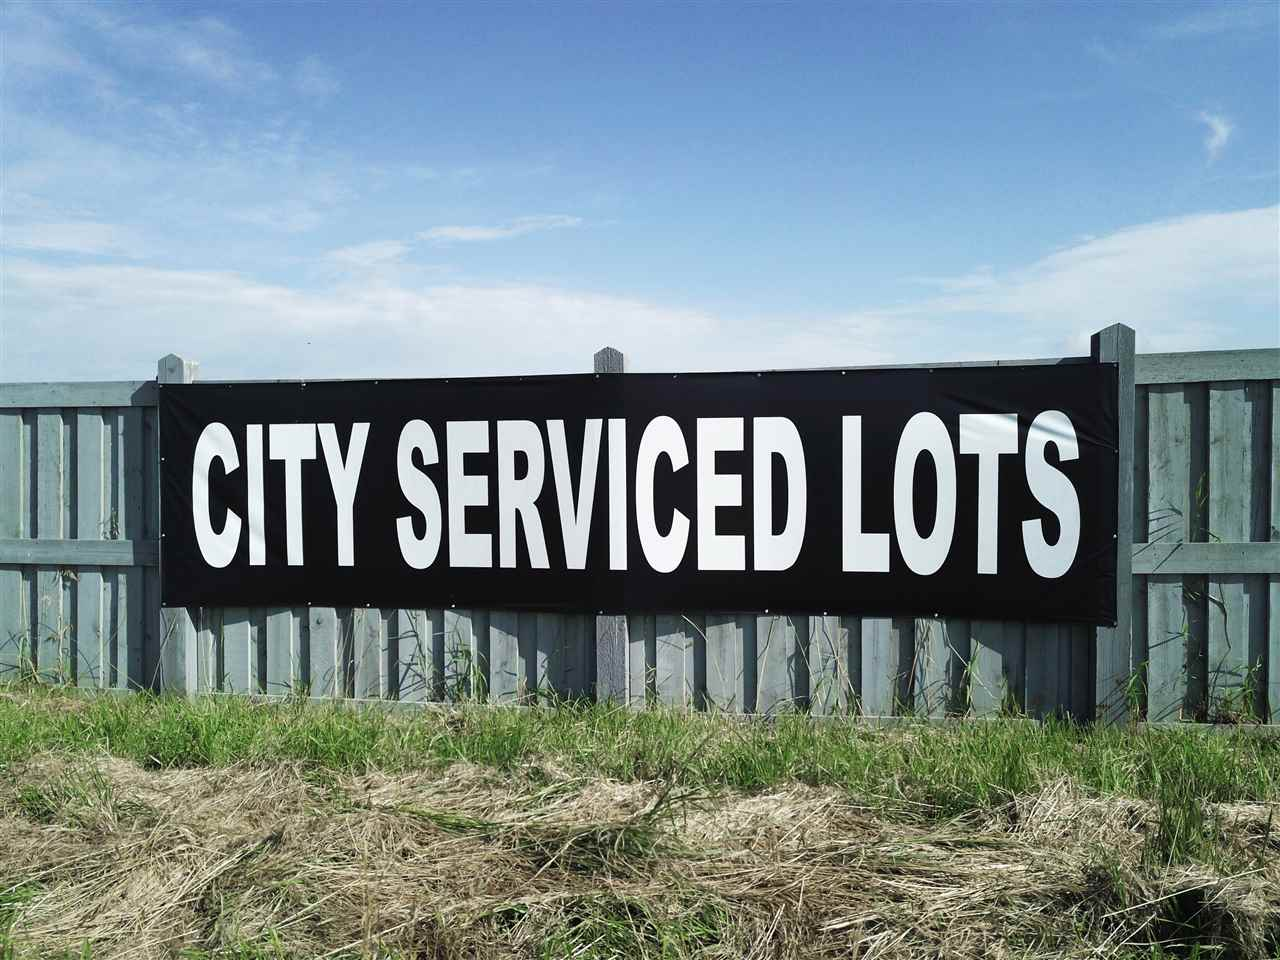 Welcome to SPRING MEADOWS ESTATES located only 10 minutes west of Edmonton & east of Spruce Grove. COUNTRY LIVING AT ITS BEST!! City Water & Sewer, High Speed Internet - you have it all. Lot 67 is 1.36 of an ACRE - PIE shaped lot backing on to Reserve area EAST Facing backyard! OVER 50% SOLD.Variety of lots to still choose from: walkouts, flat lots, & even lots backing on to Natural Reserve. IT IS SIMPLY YOUR CHOICE! Choose a lot that fits the home you want to build! Looking for a builder, we can assist you or you can choose your own. Developer FINANCING PKGES available. GET IN BEFORE PRICE INCREASE. GST May apply.